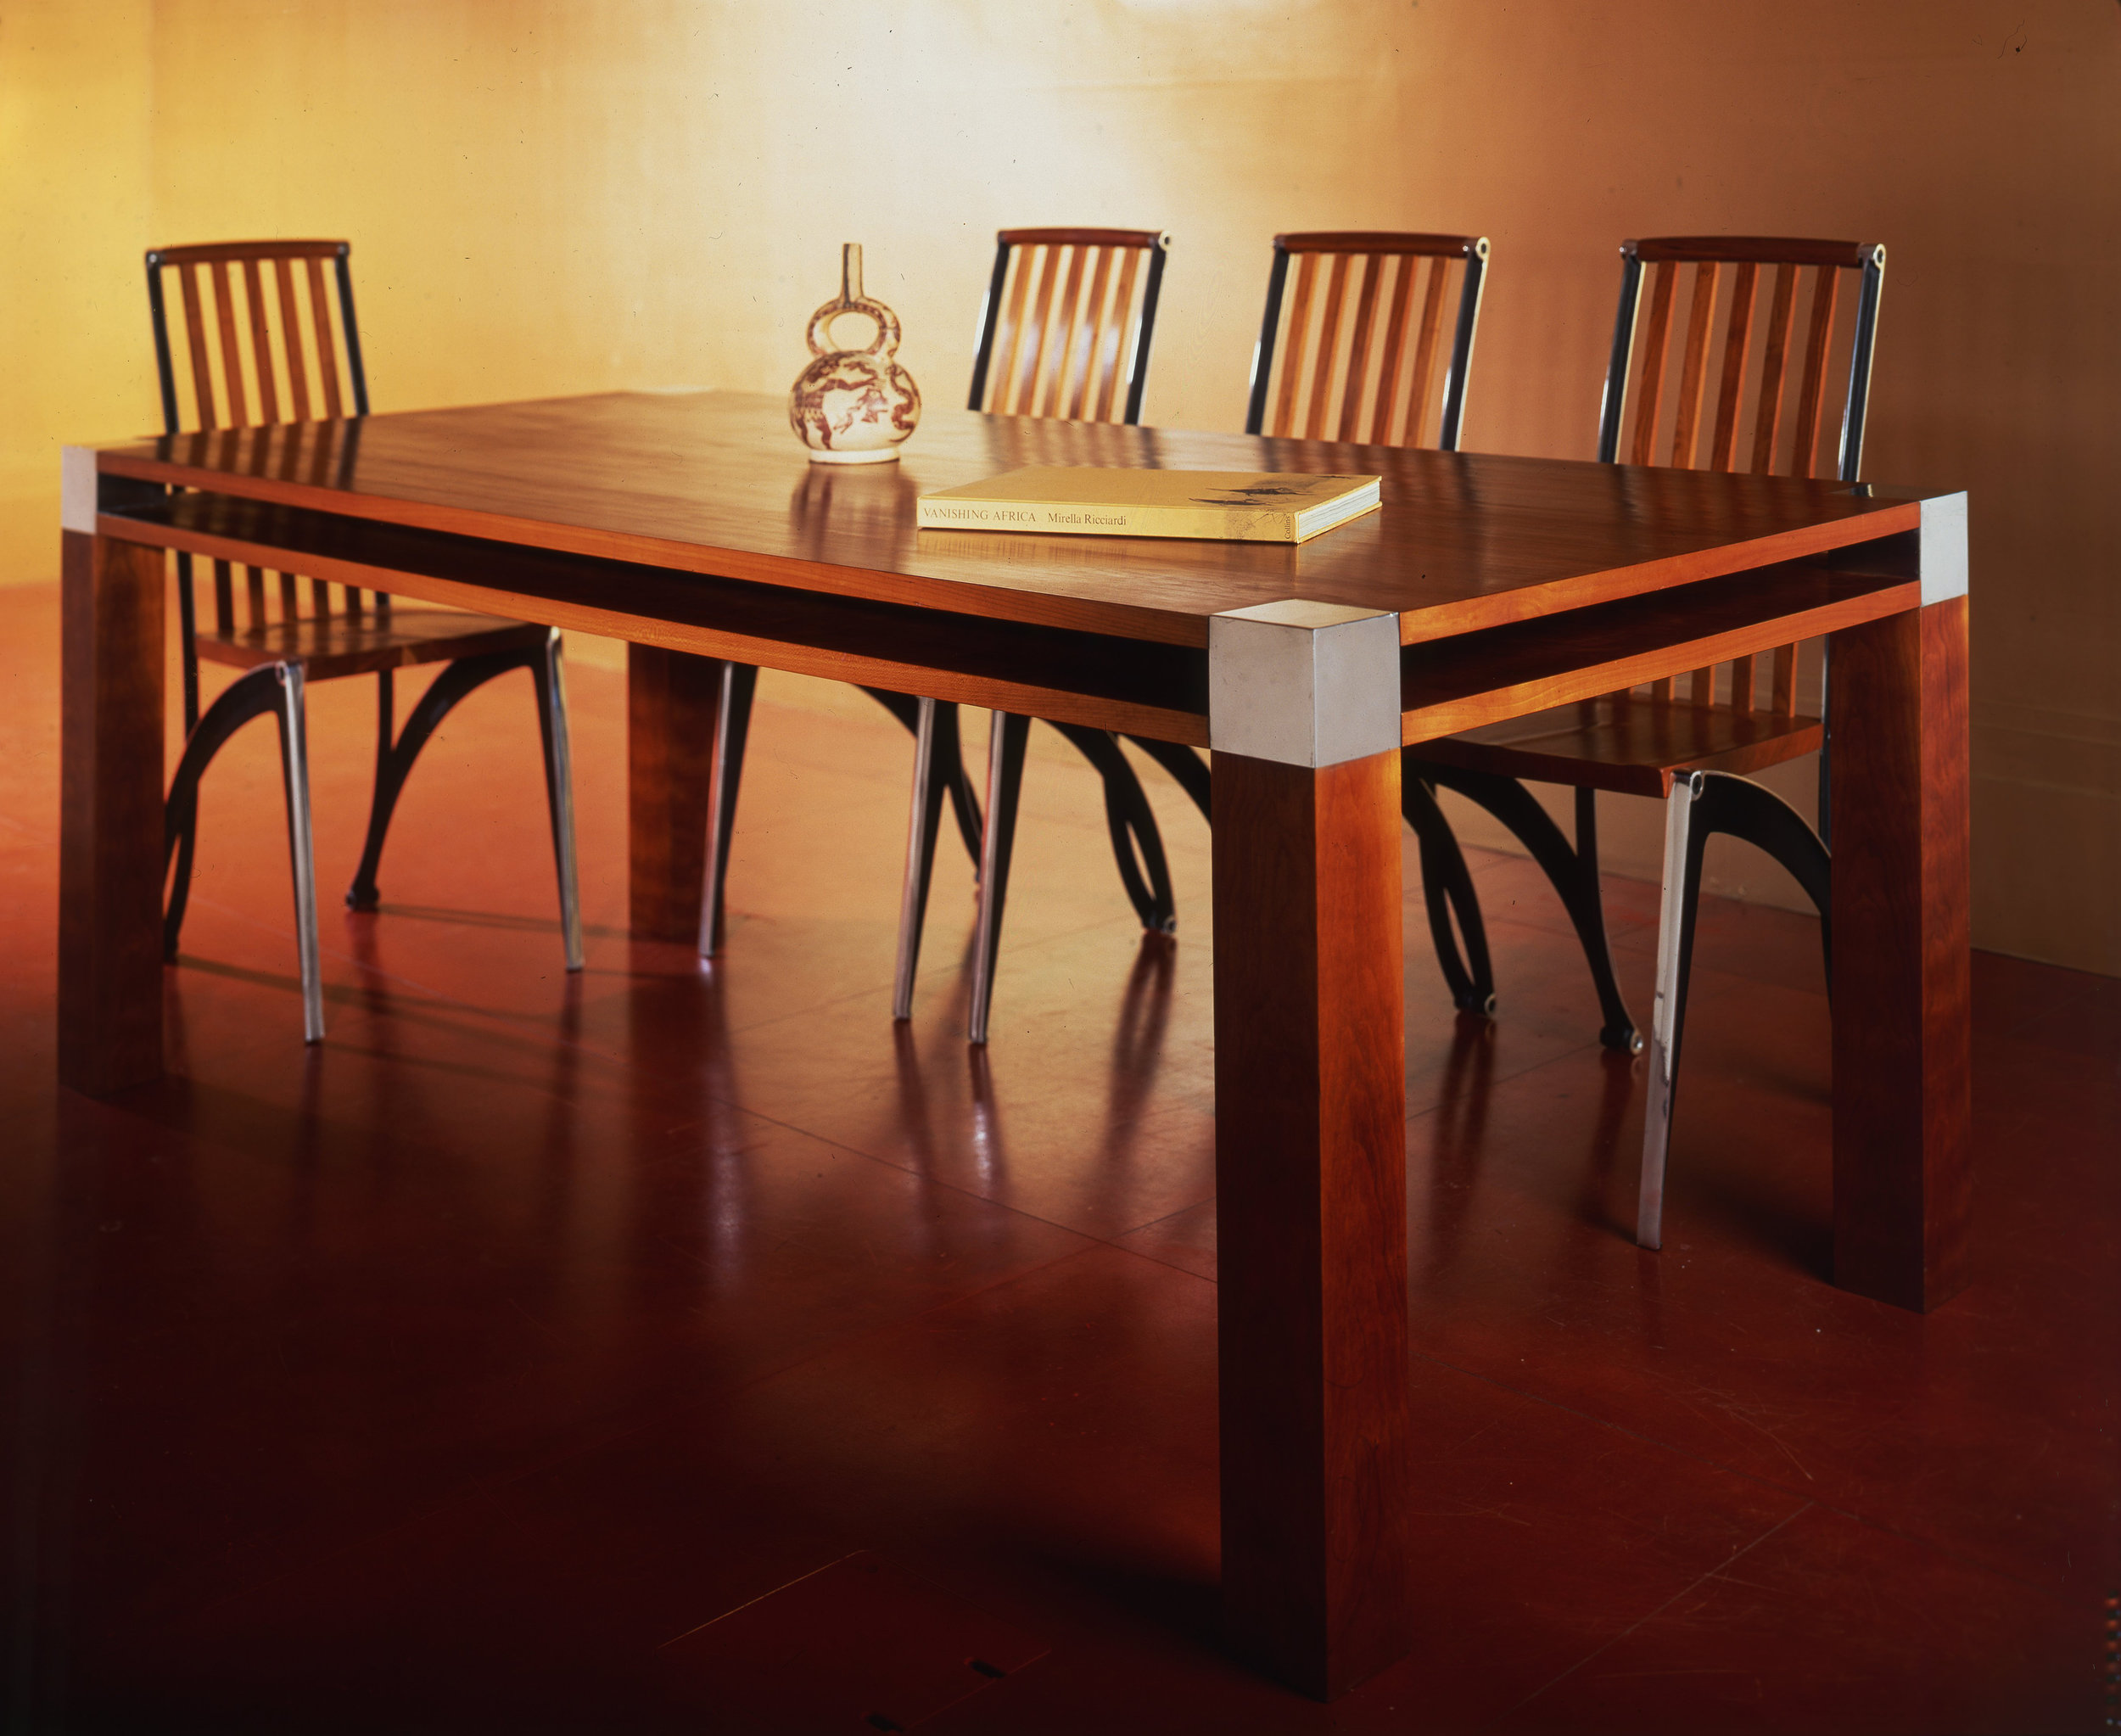 Scanelatto dining table with Màntide dining chairs